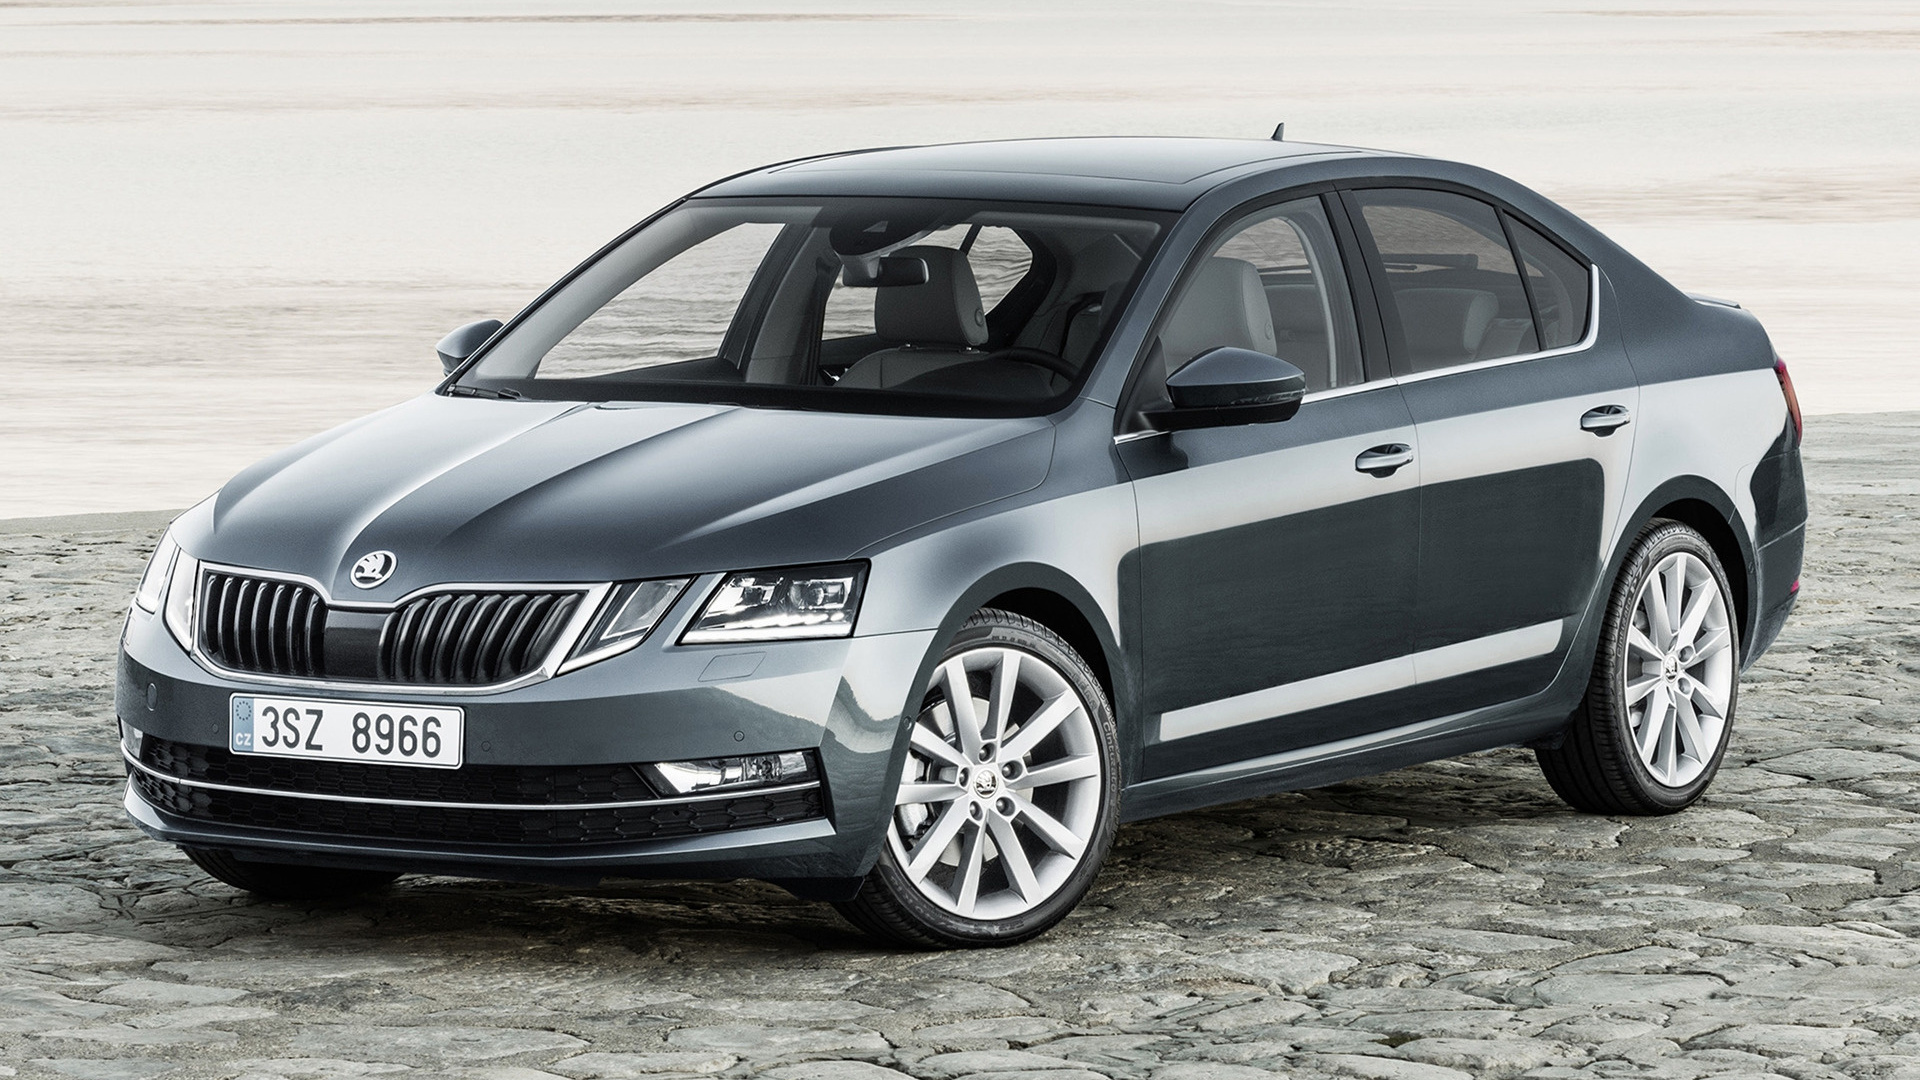 skoda octavia 2017 wallpapers and hd images car pixel. Black Bedroom Furniture Sets. Home Design Ideas